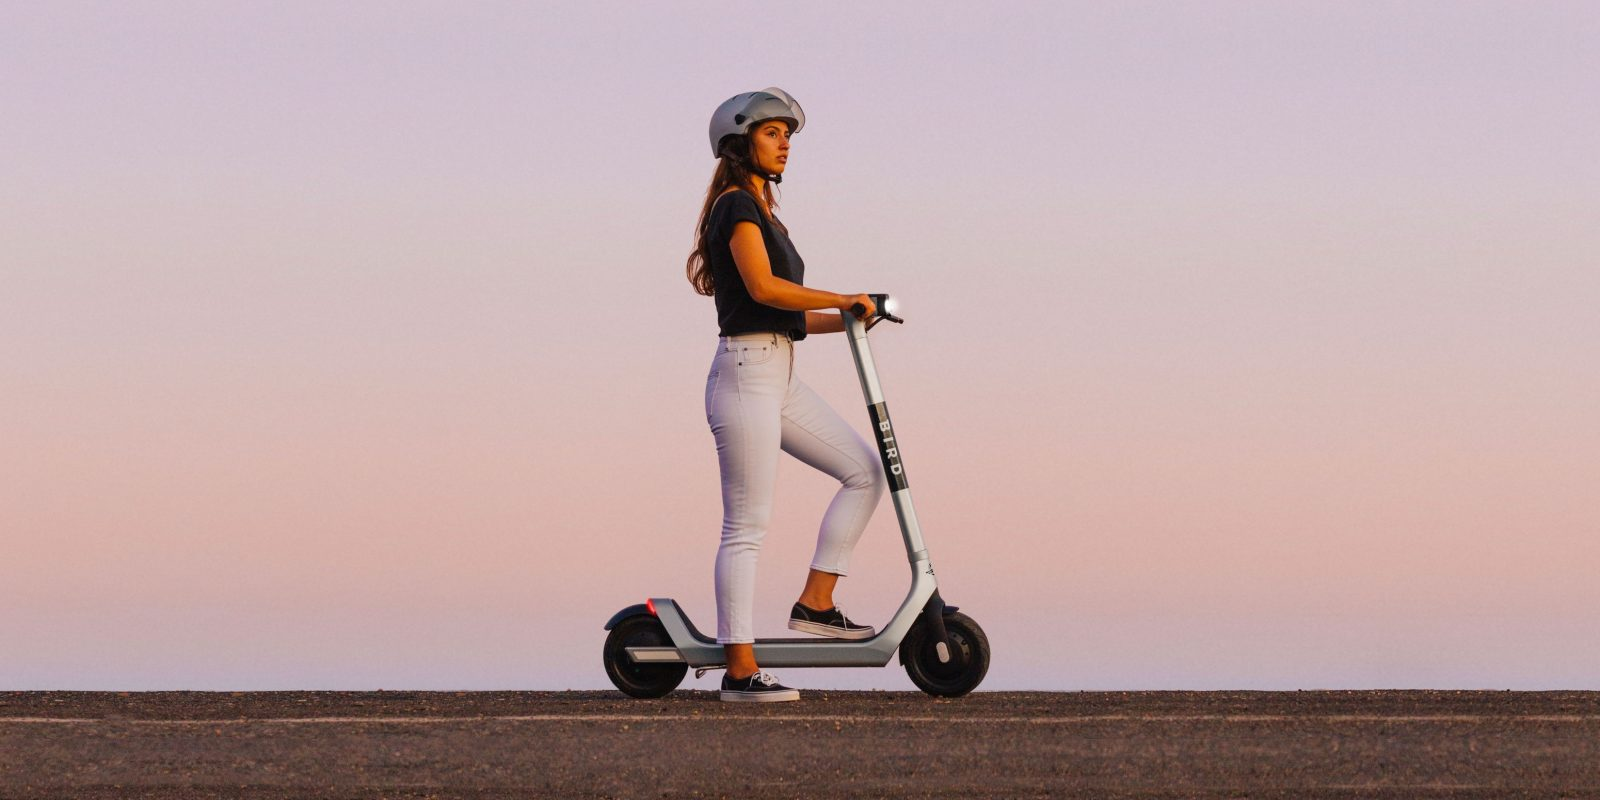 Bird's new futuristic Bird Two electric scooter ups the ante